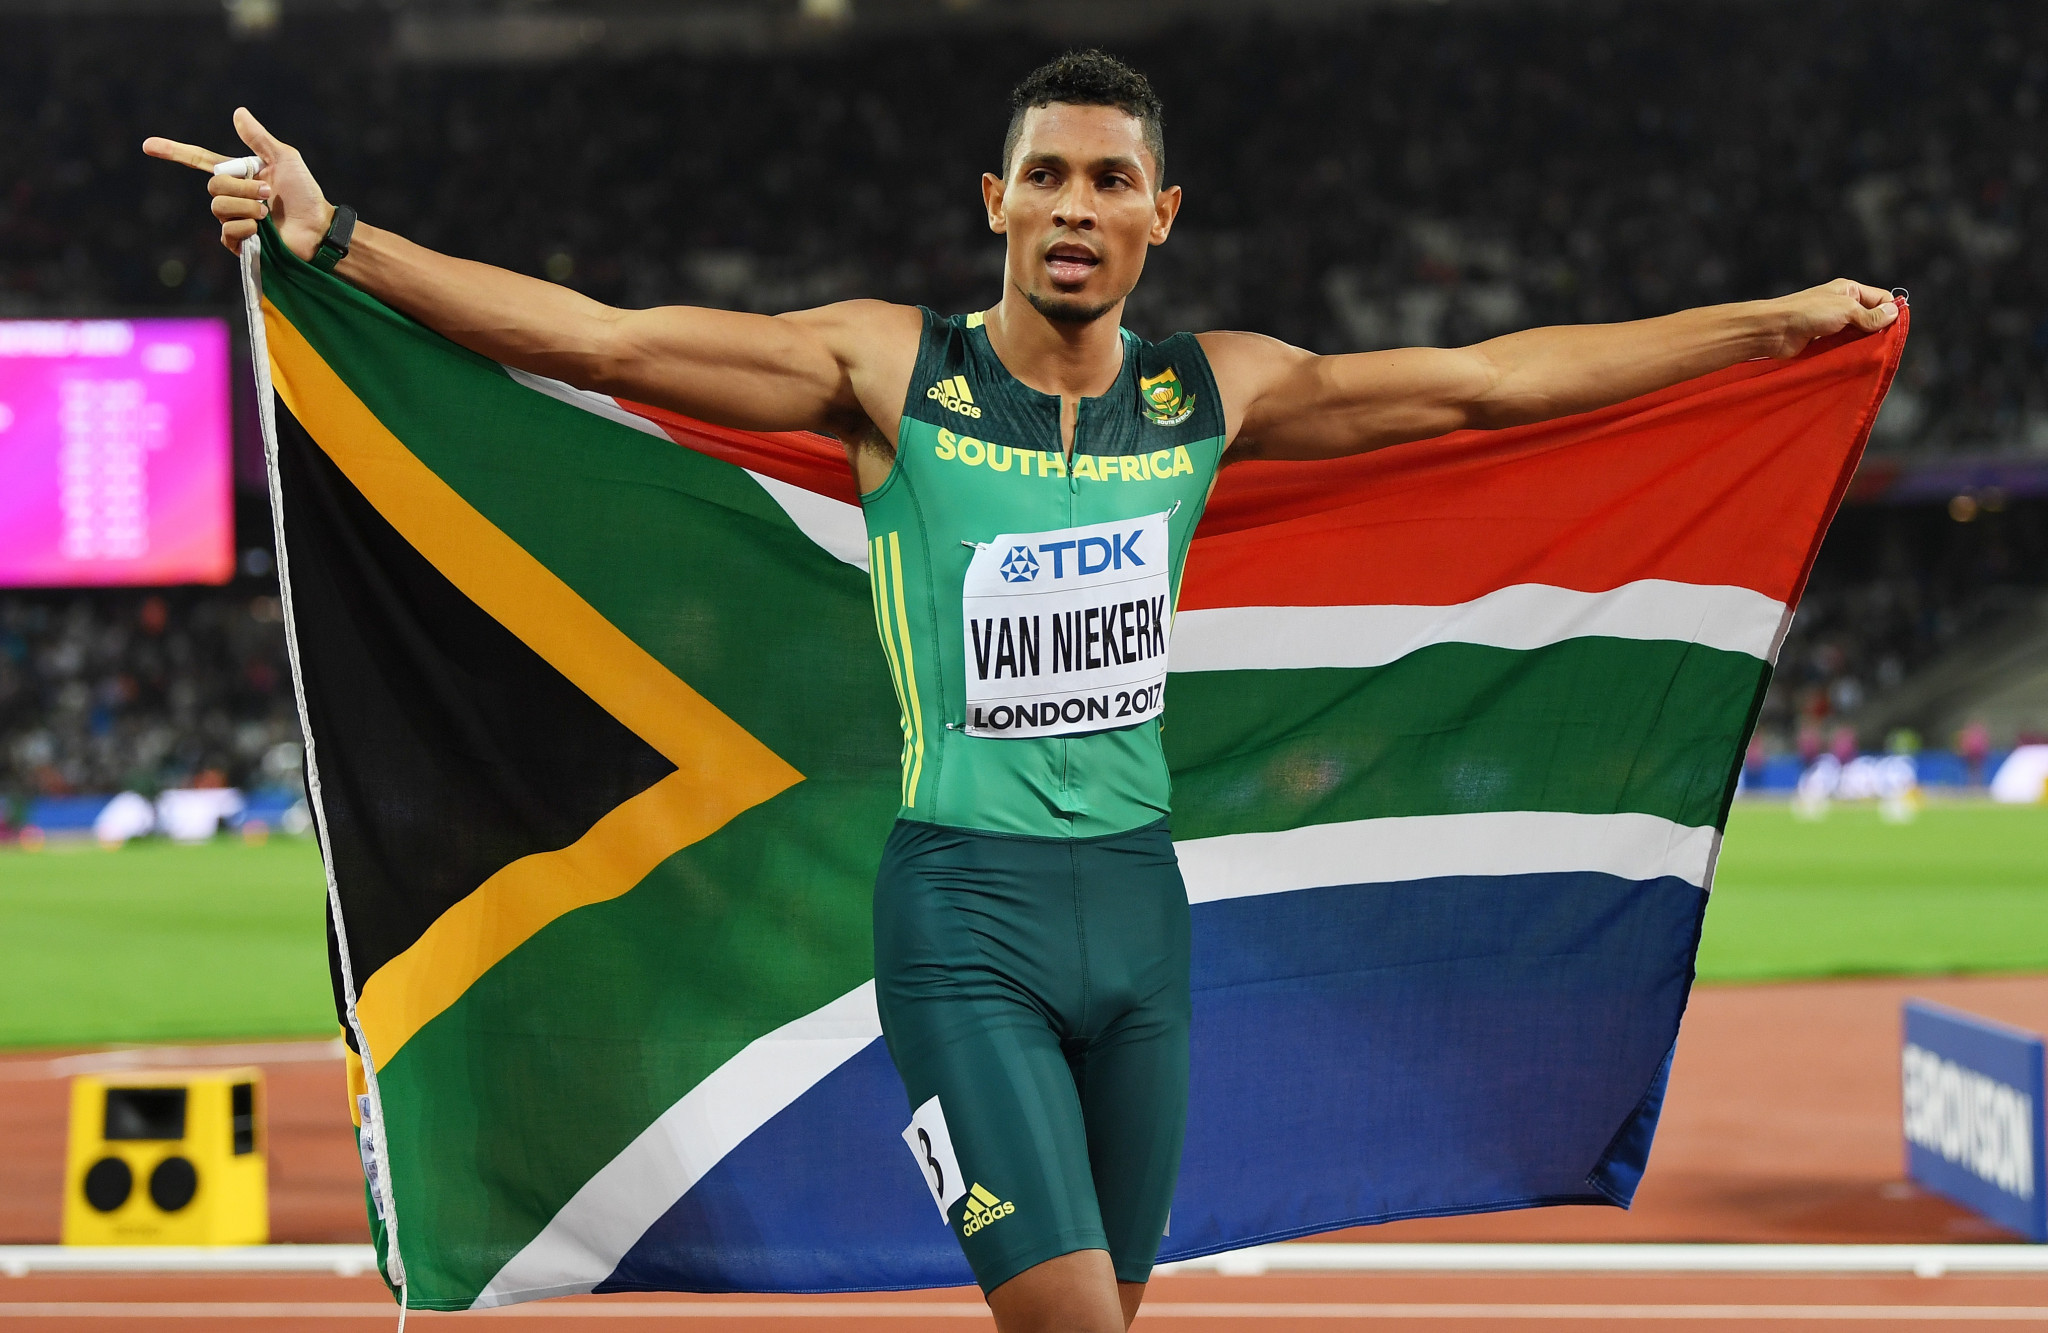 SA's Van Niekerk tests positive for COVID-19 in Italy - Sports Leo